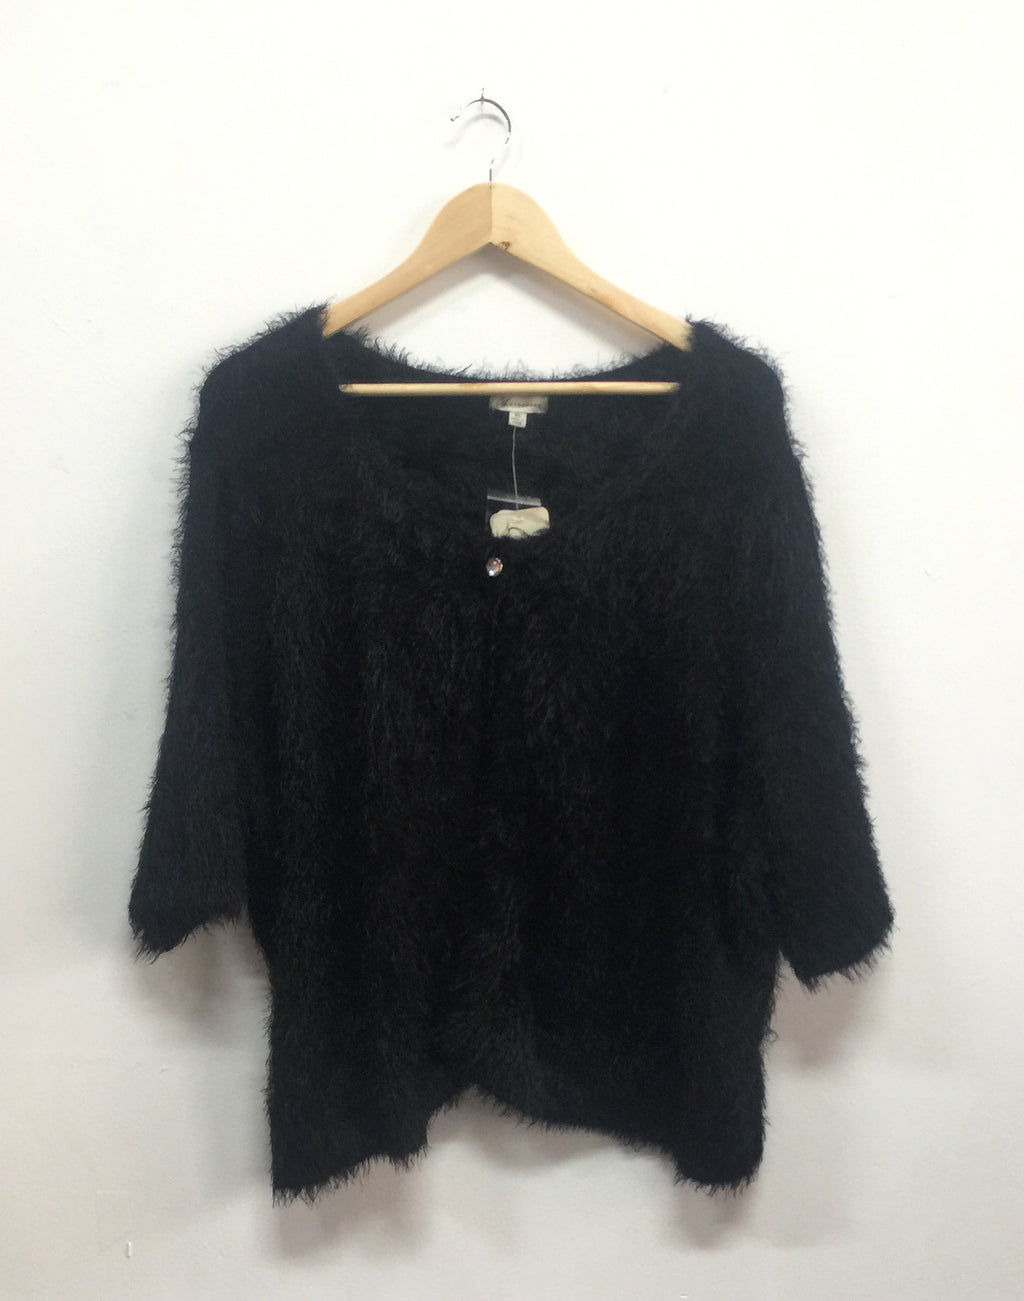 Black Eyelash Yarn Fluffy Cardigan